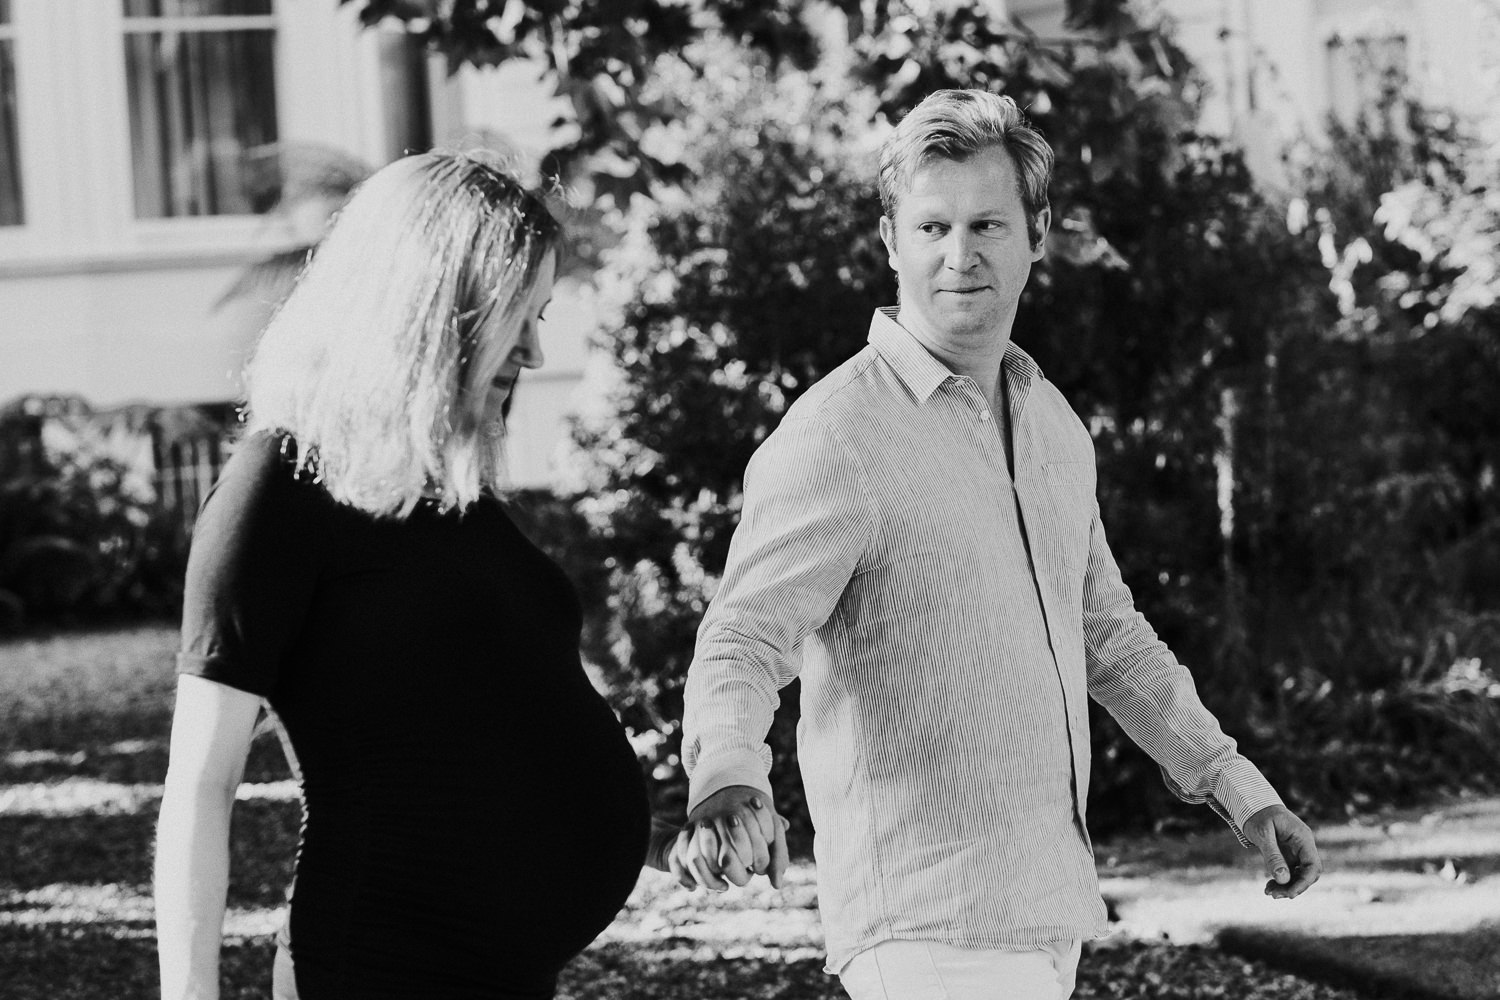 LONDON MATERNITY PHOTO SHOOT pregnant woman and husband walking in garden black and white